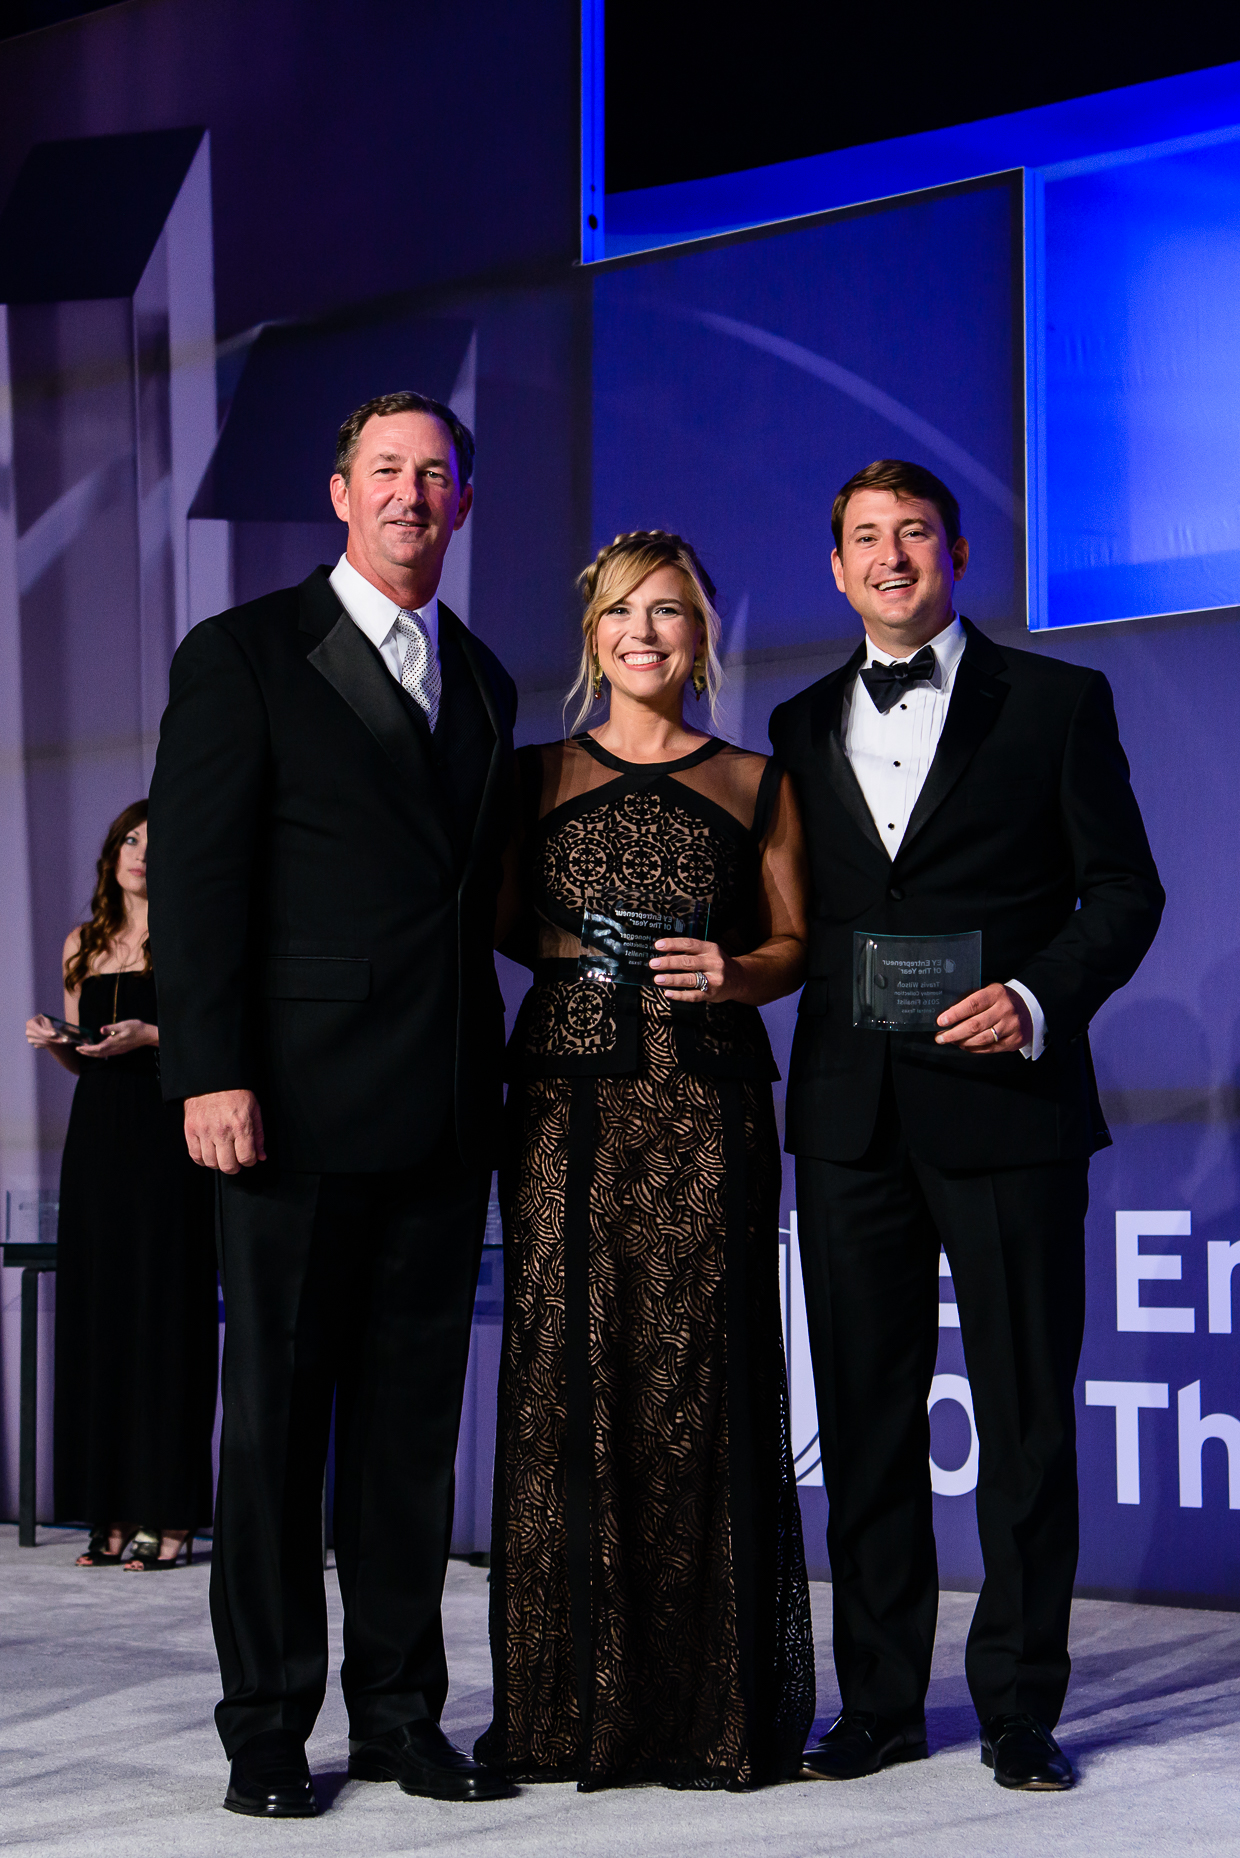 Austin Event Photographer - Ernst and Young Entrepreneur of the Year Award - Stage